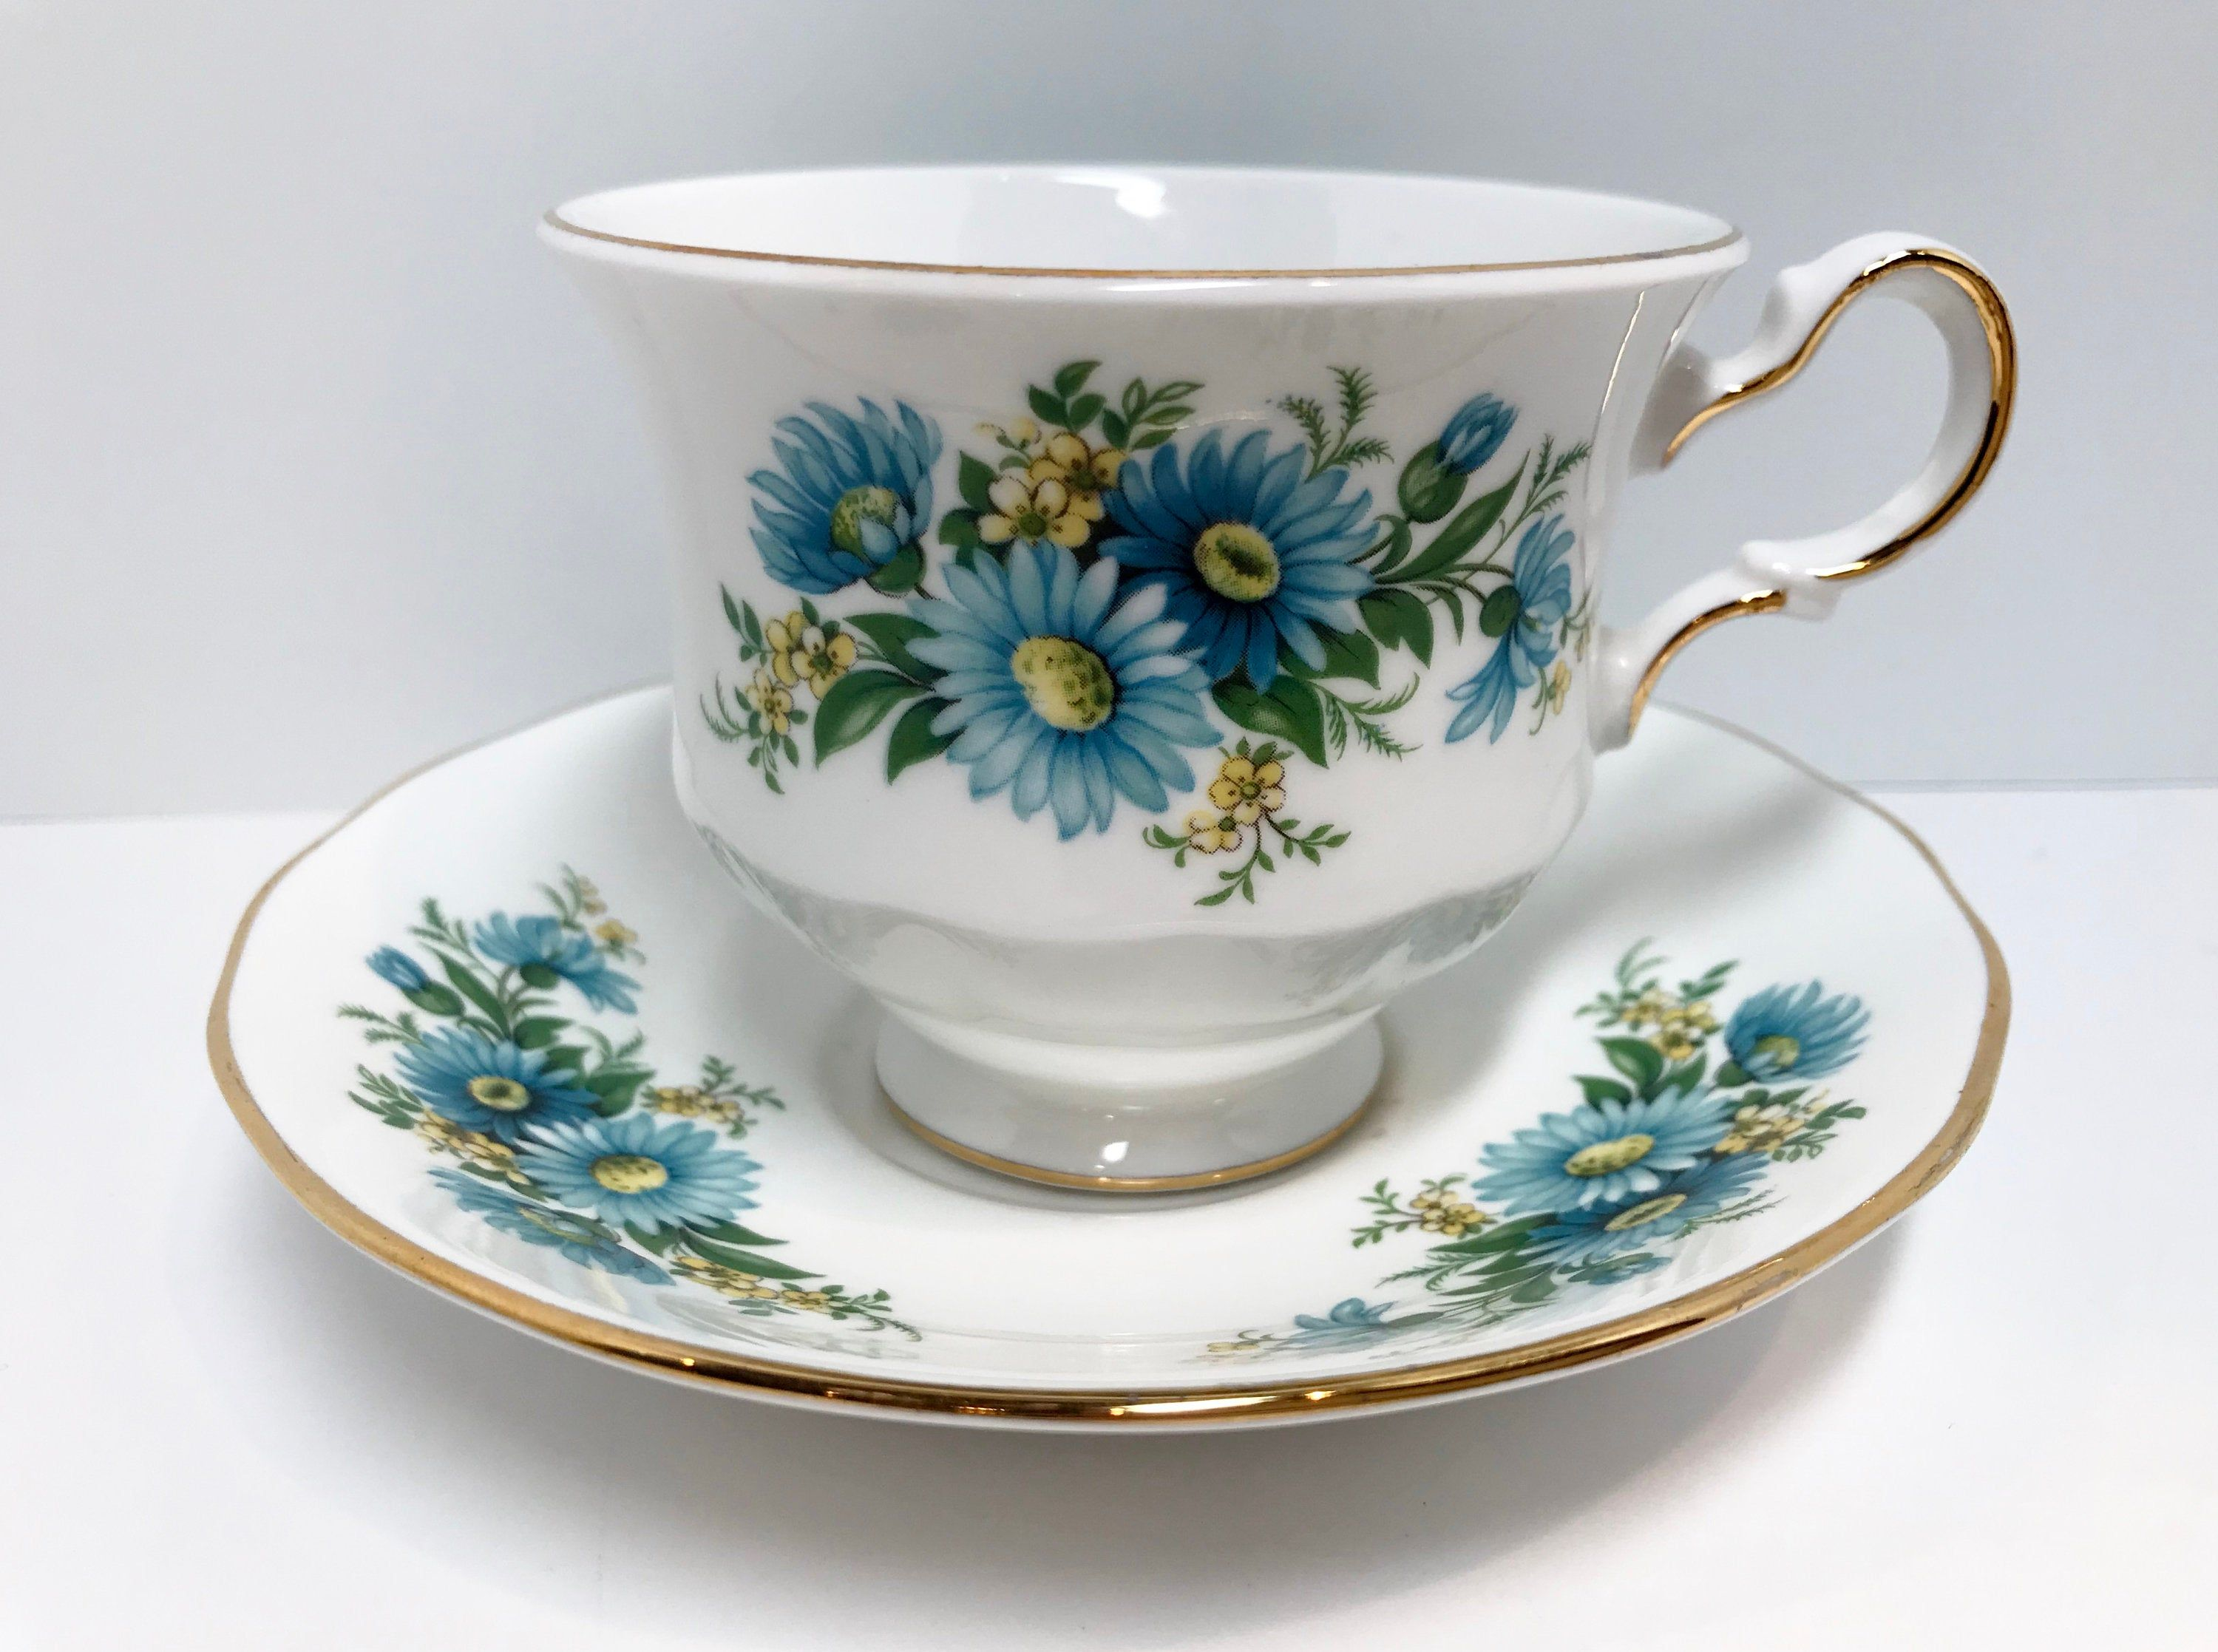 Queen Anne Tea Cup and Saucer, Blue Daisies Teacup, Antique Teacups Vintage, Daisy Tea Cups, Floral Teacups, Blue Daisy Tea Cups, Friendship #teacups